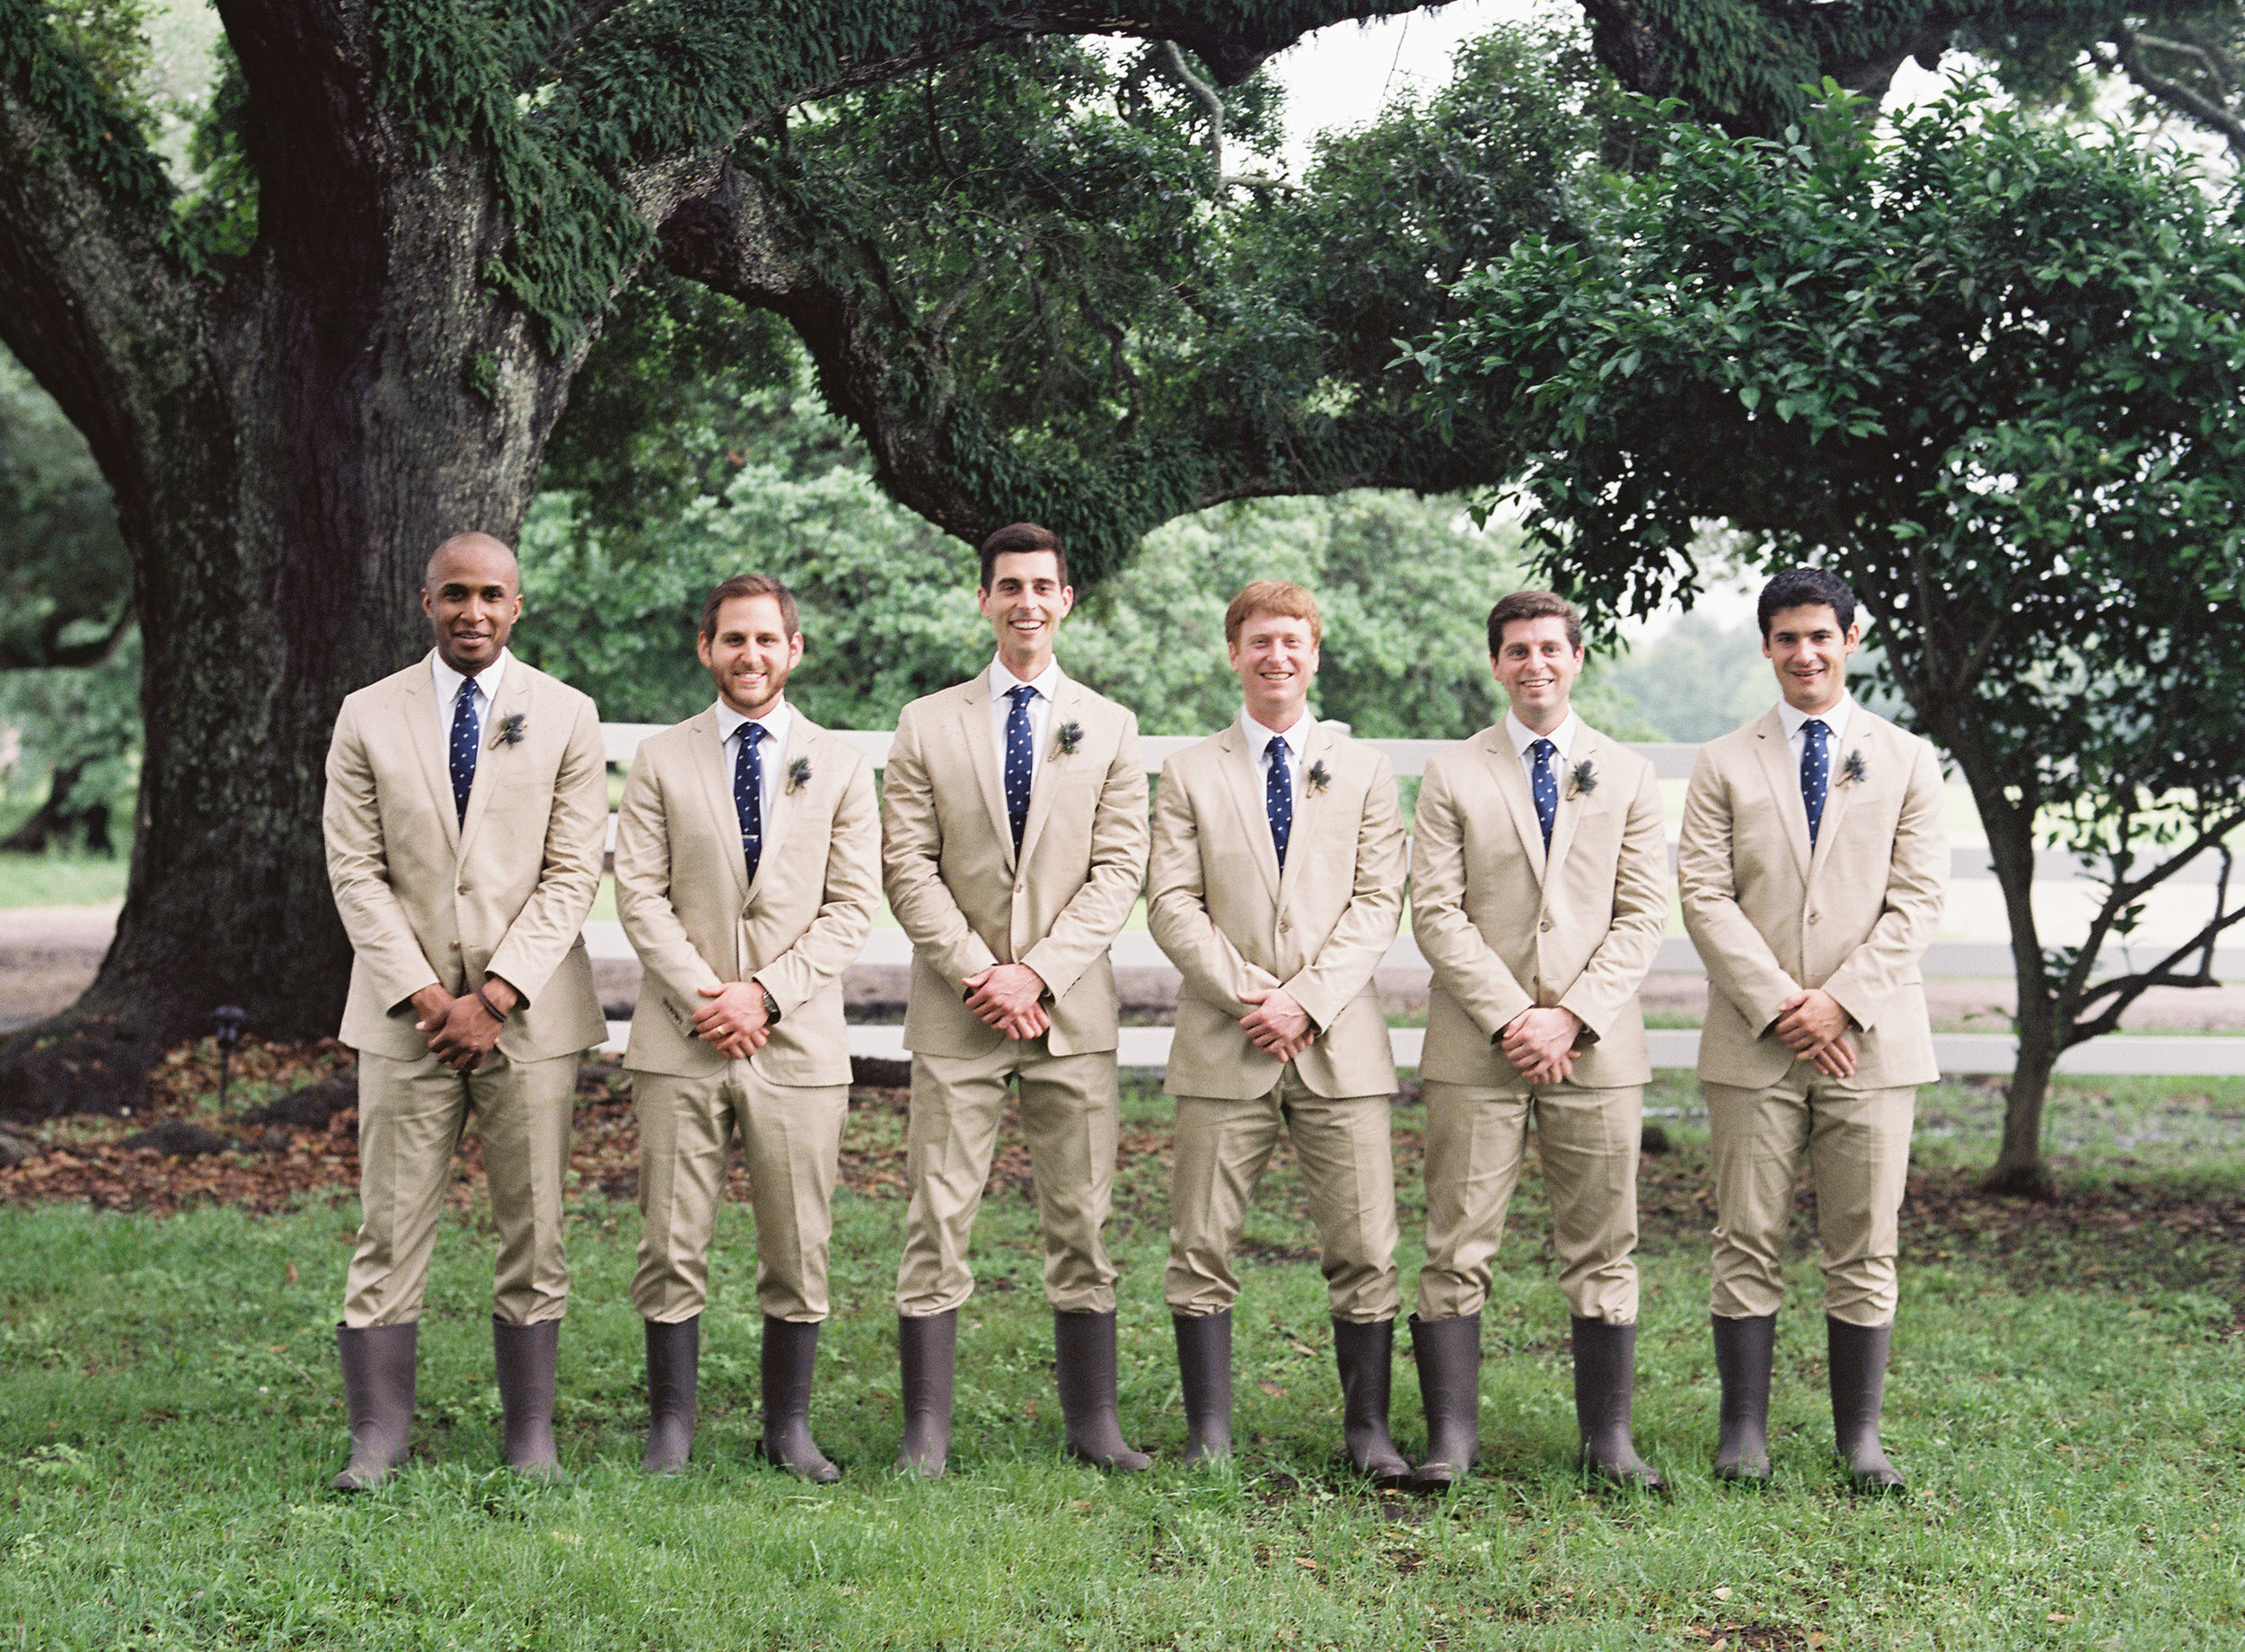 Sapphire Events | Catherine Guidry Photography | Wedding Planning | New Orleans Wedding | Stella Plantation Wedding | Blue and White Wedding | Classic Rainy Day Wedding | Outdoor Wedding | Tent Wedding | Hunter Boots | Blue and White Wedding Details | tan suits groomsmen | rain boots